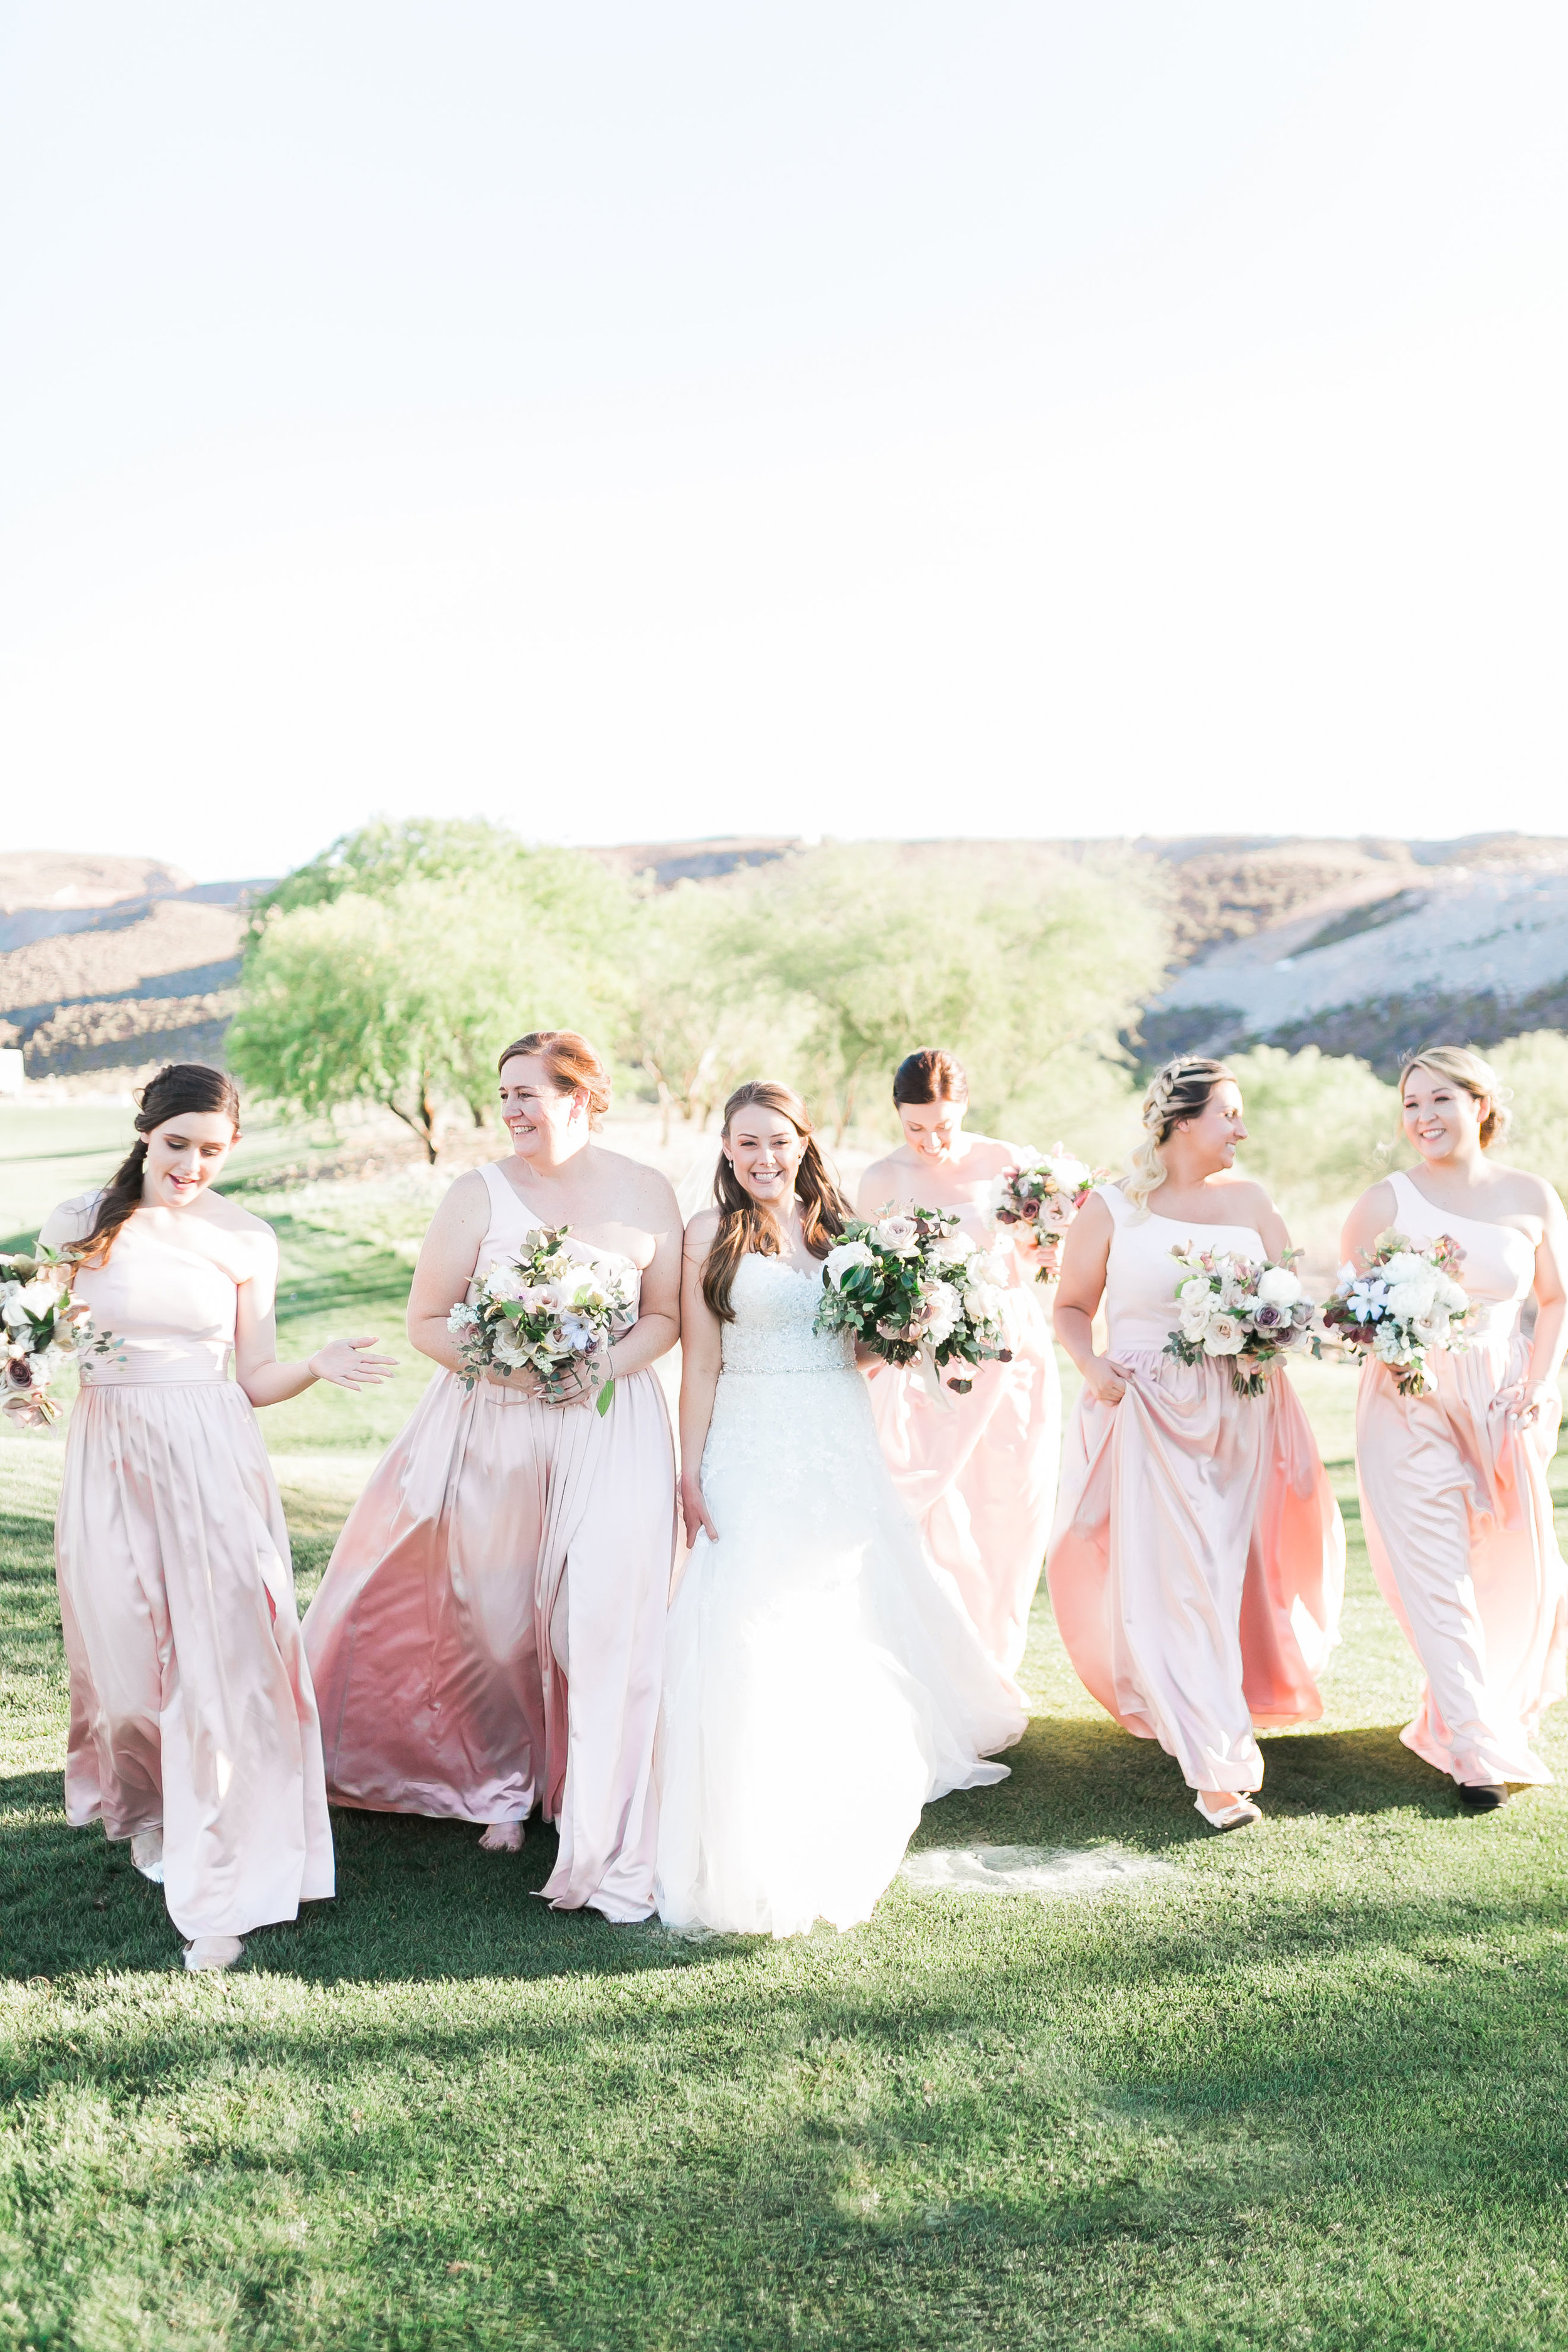 Bridal squad with bridesmaids in blush dresses.